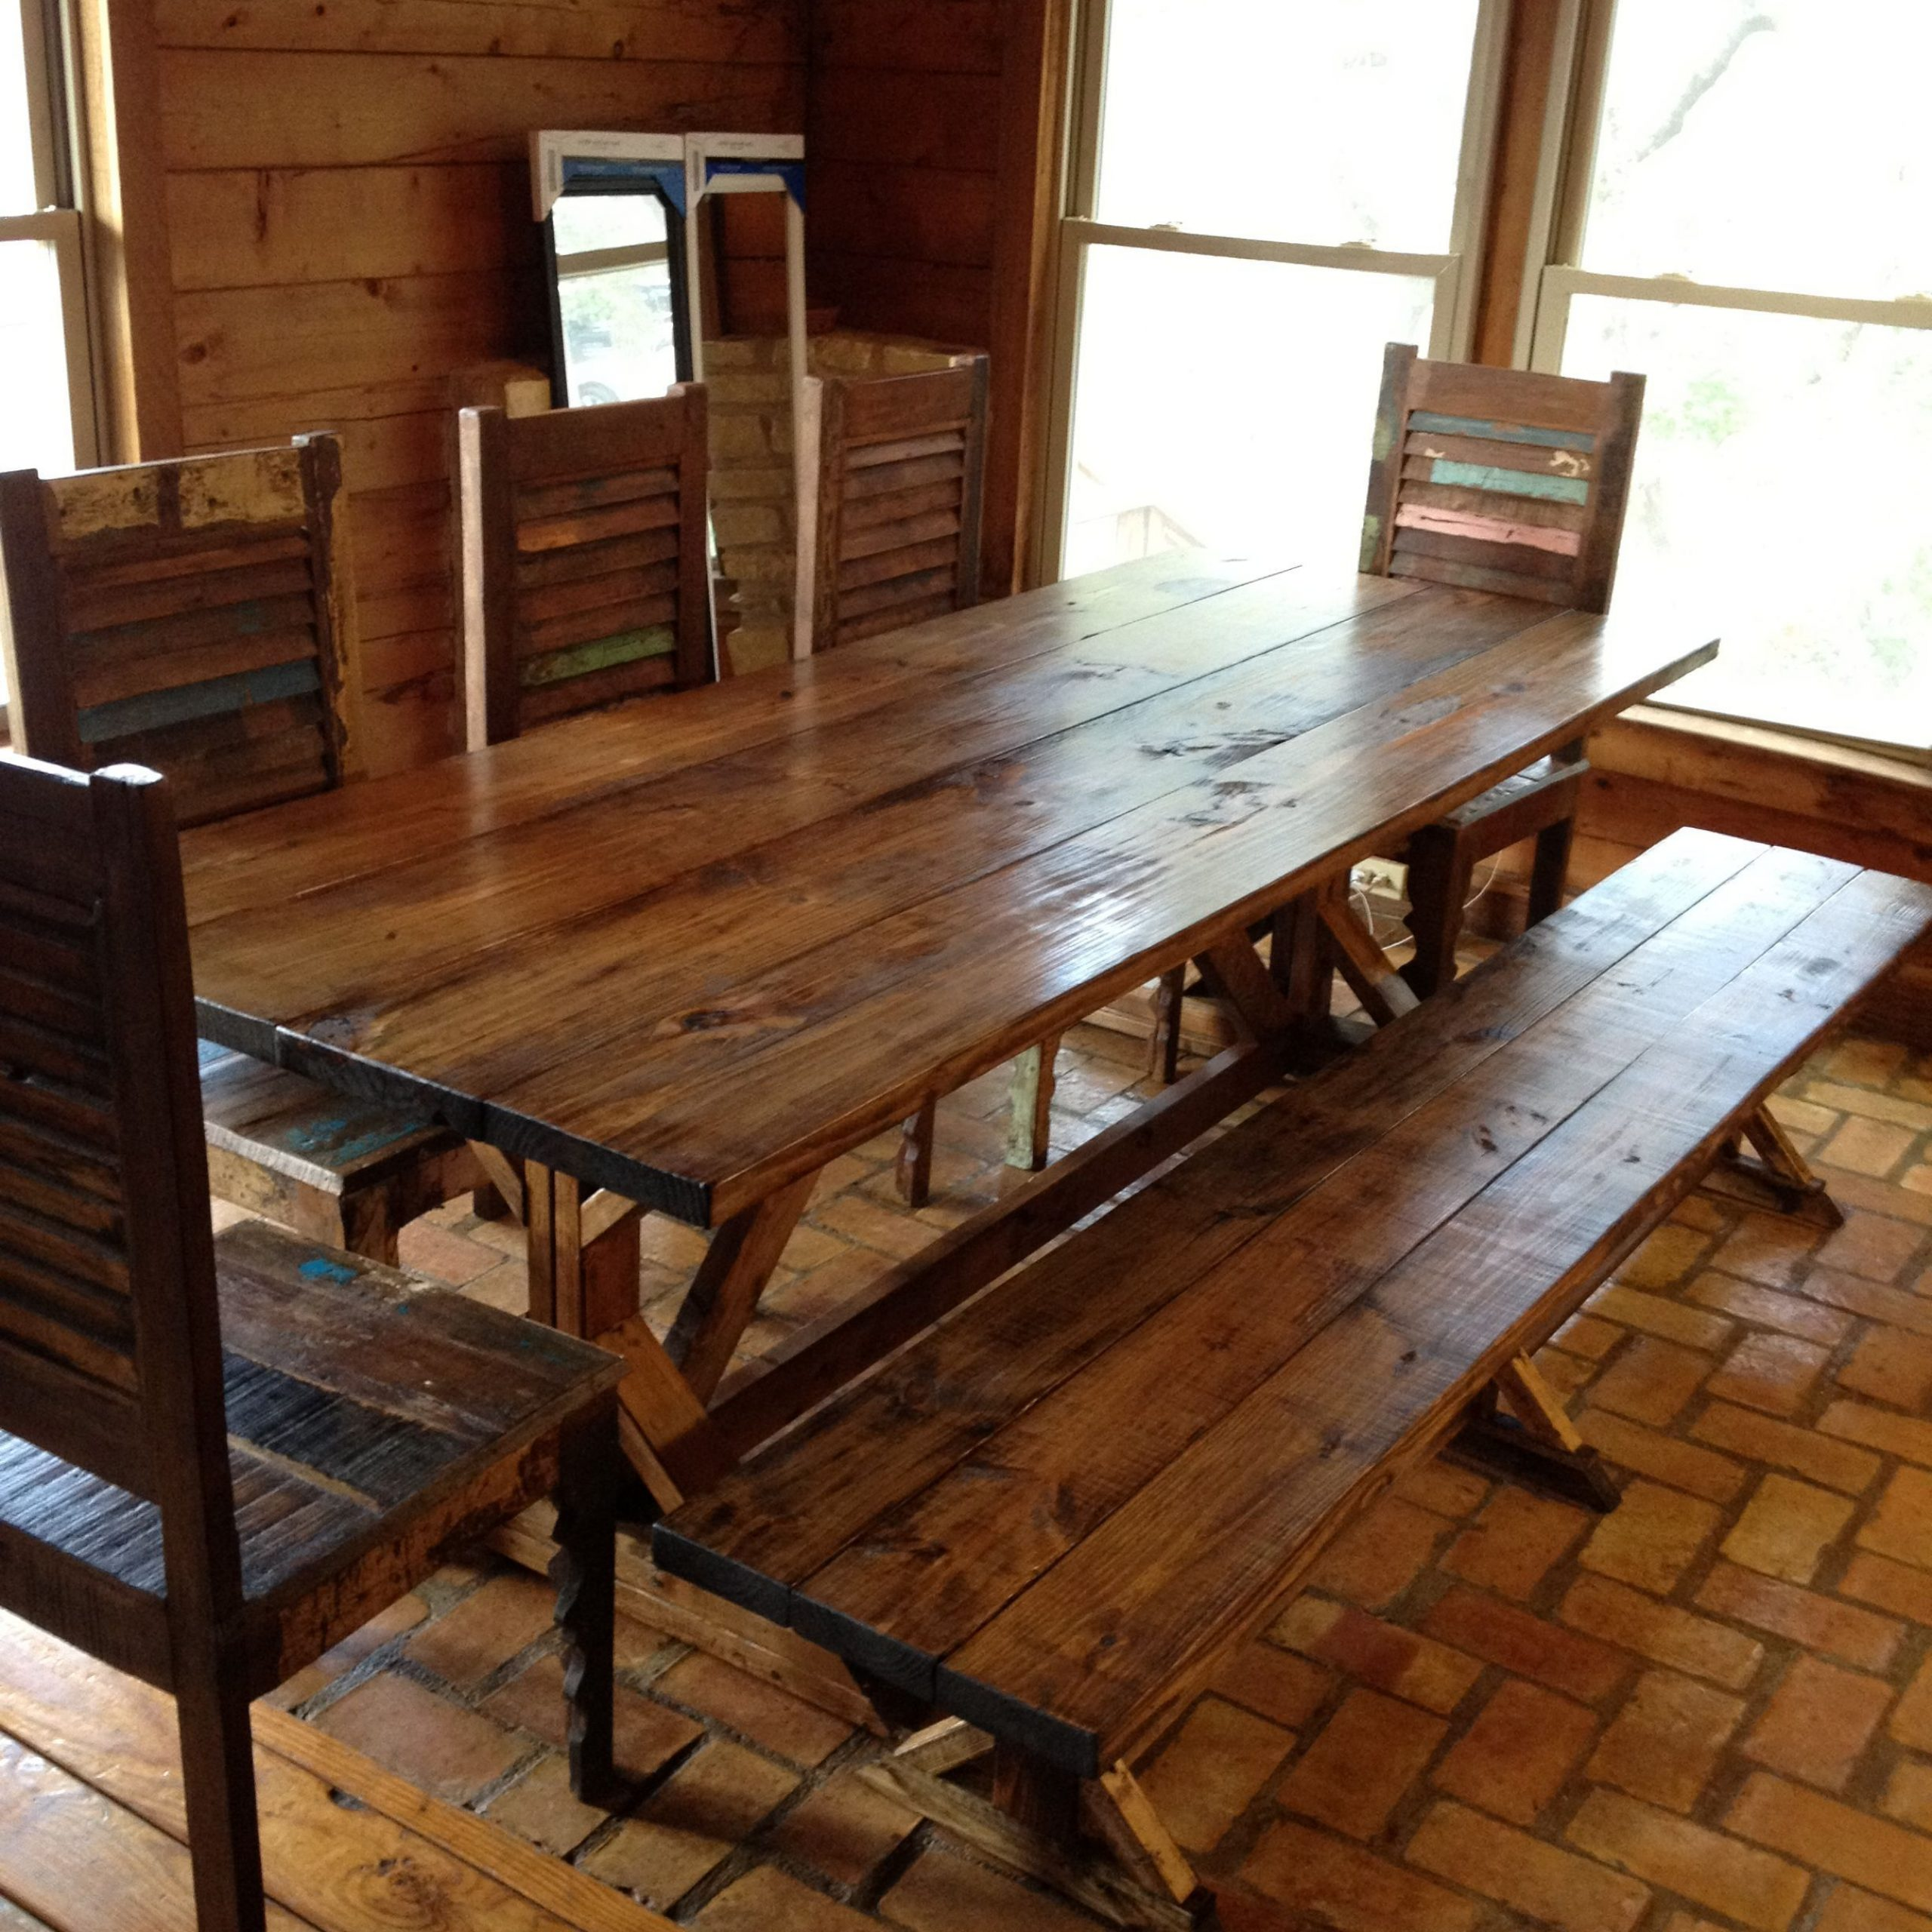 Rustic Dining Tables With Benches Rustic Dining Table Picnic Intended For Most Up To Date Small Rustic Look Dining Tables (View 17 of 25)